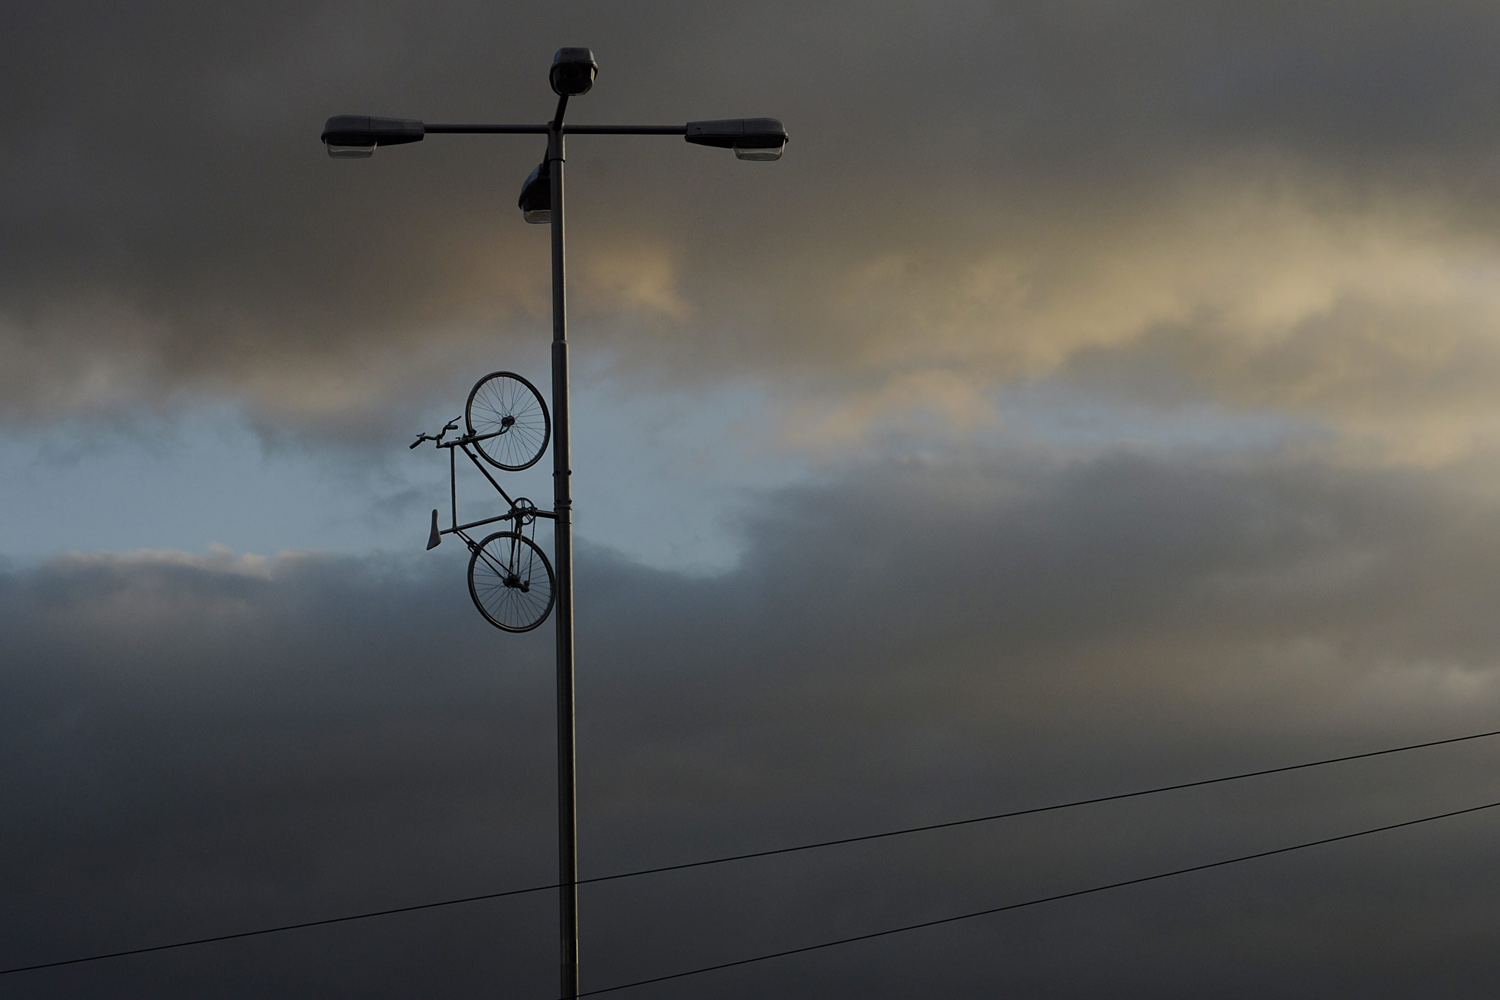 Sept. 23, 2013. A view of a silver-covered bicycle mounted in a public city lamp post, called Bike to Heaven is seen in Prague, Czech Republic.